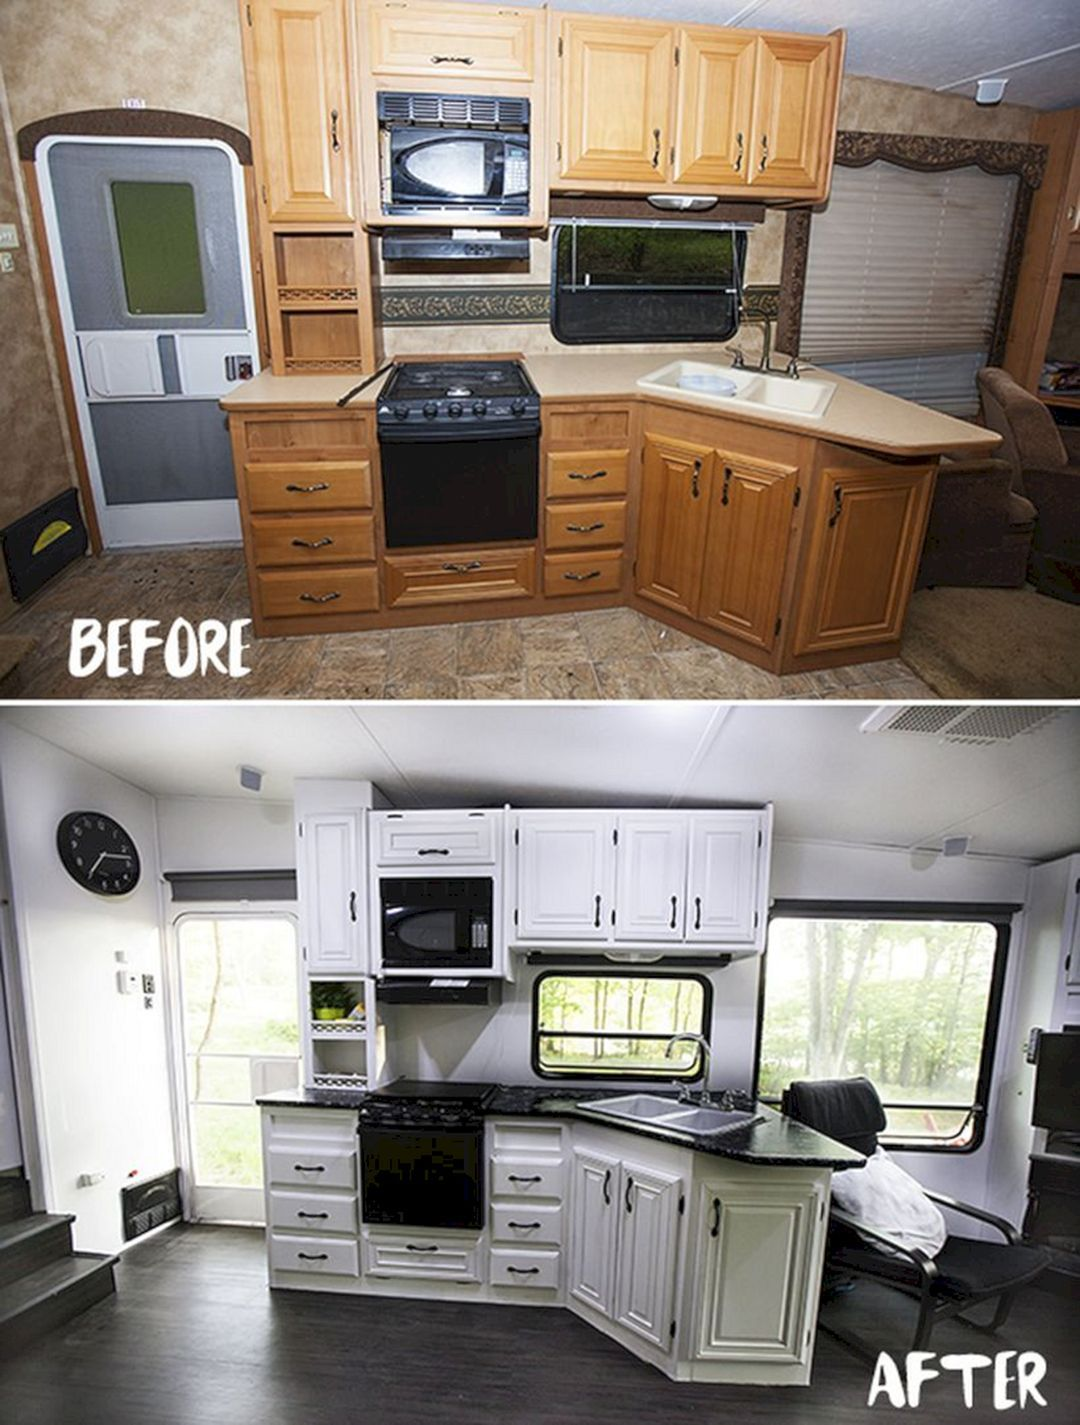 Rv: 25 Best RV Camper Interior Remodel Ideas (Before And After